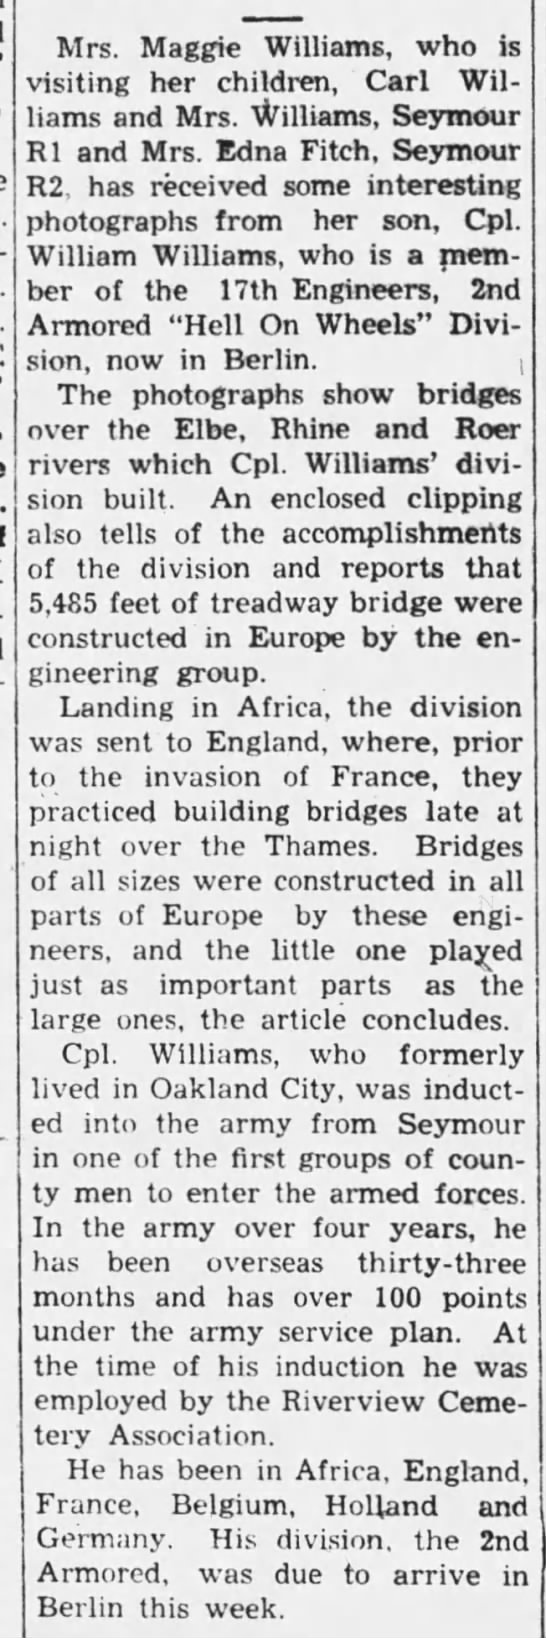 The Tribune (Seymour, Jackson, Indiana, United States of America) · 7 Jul 1945